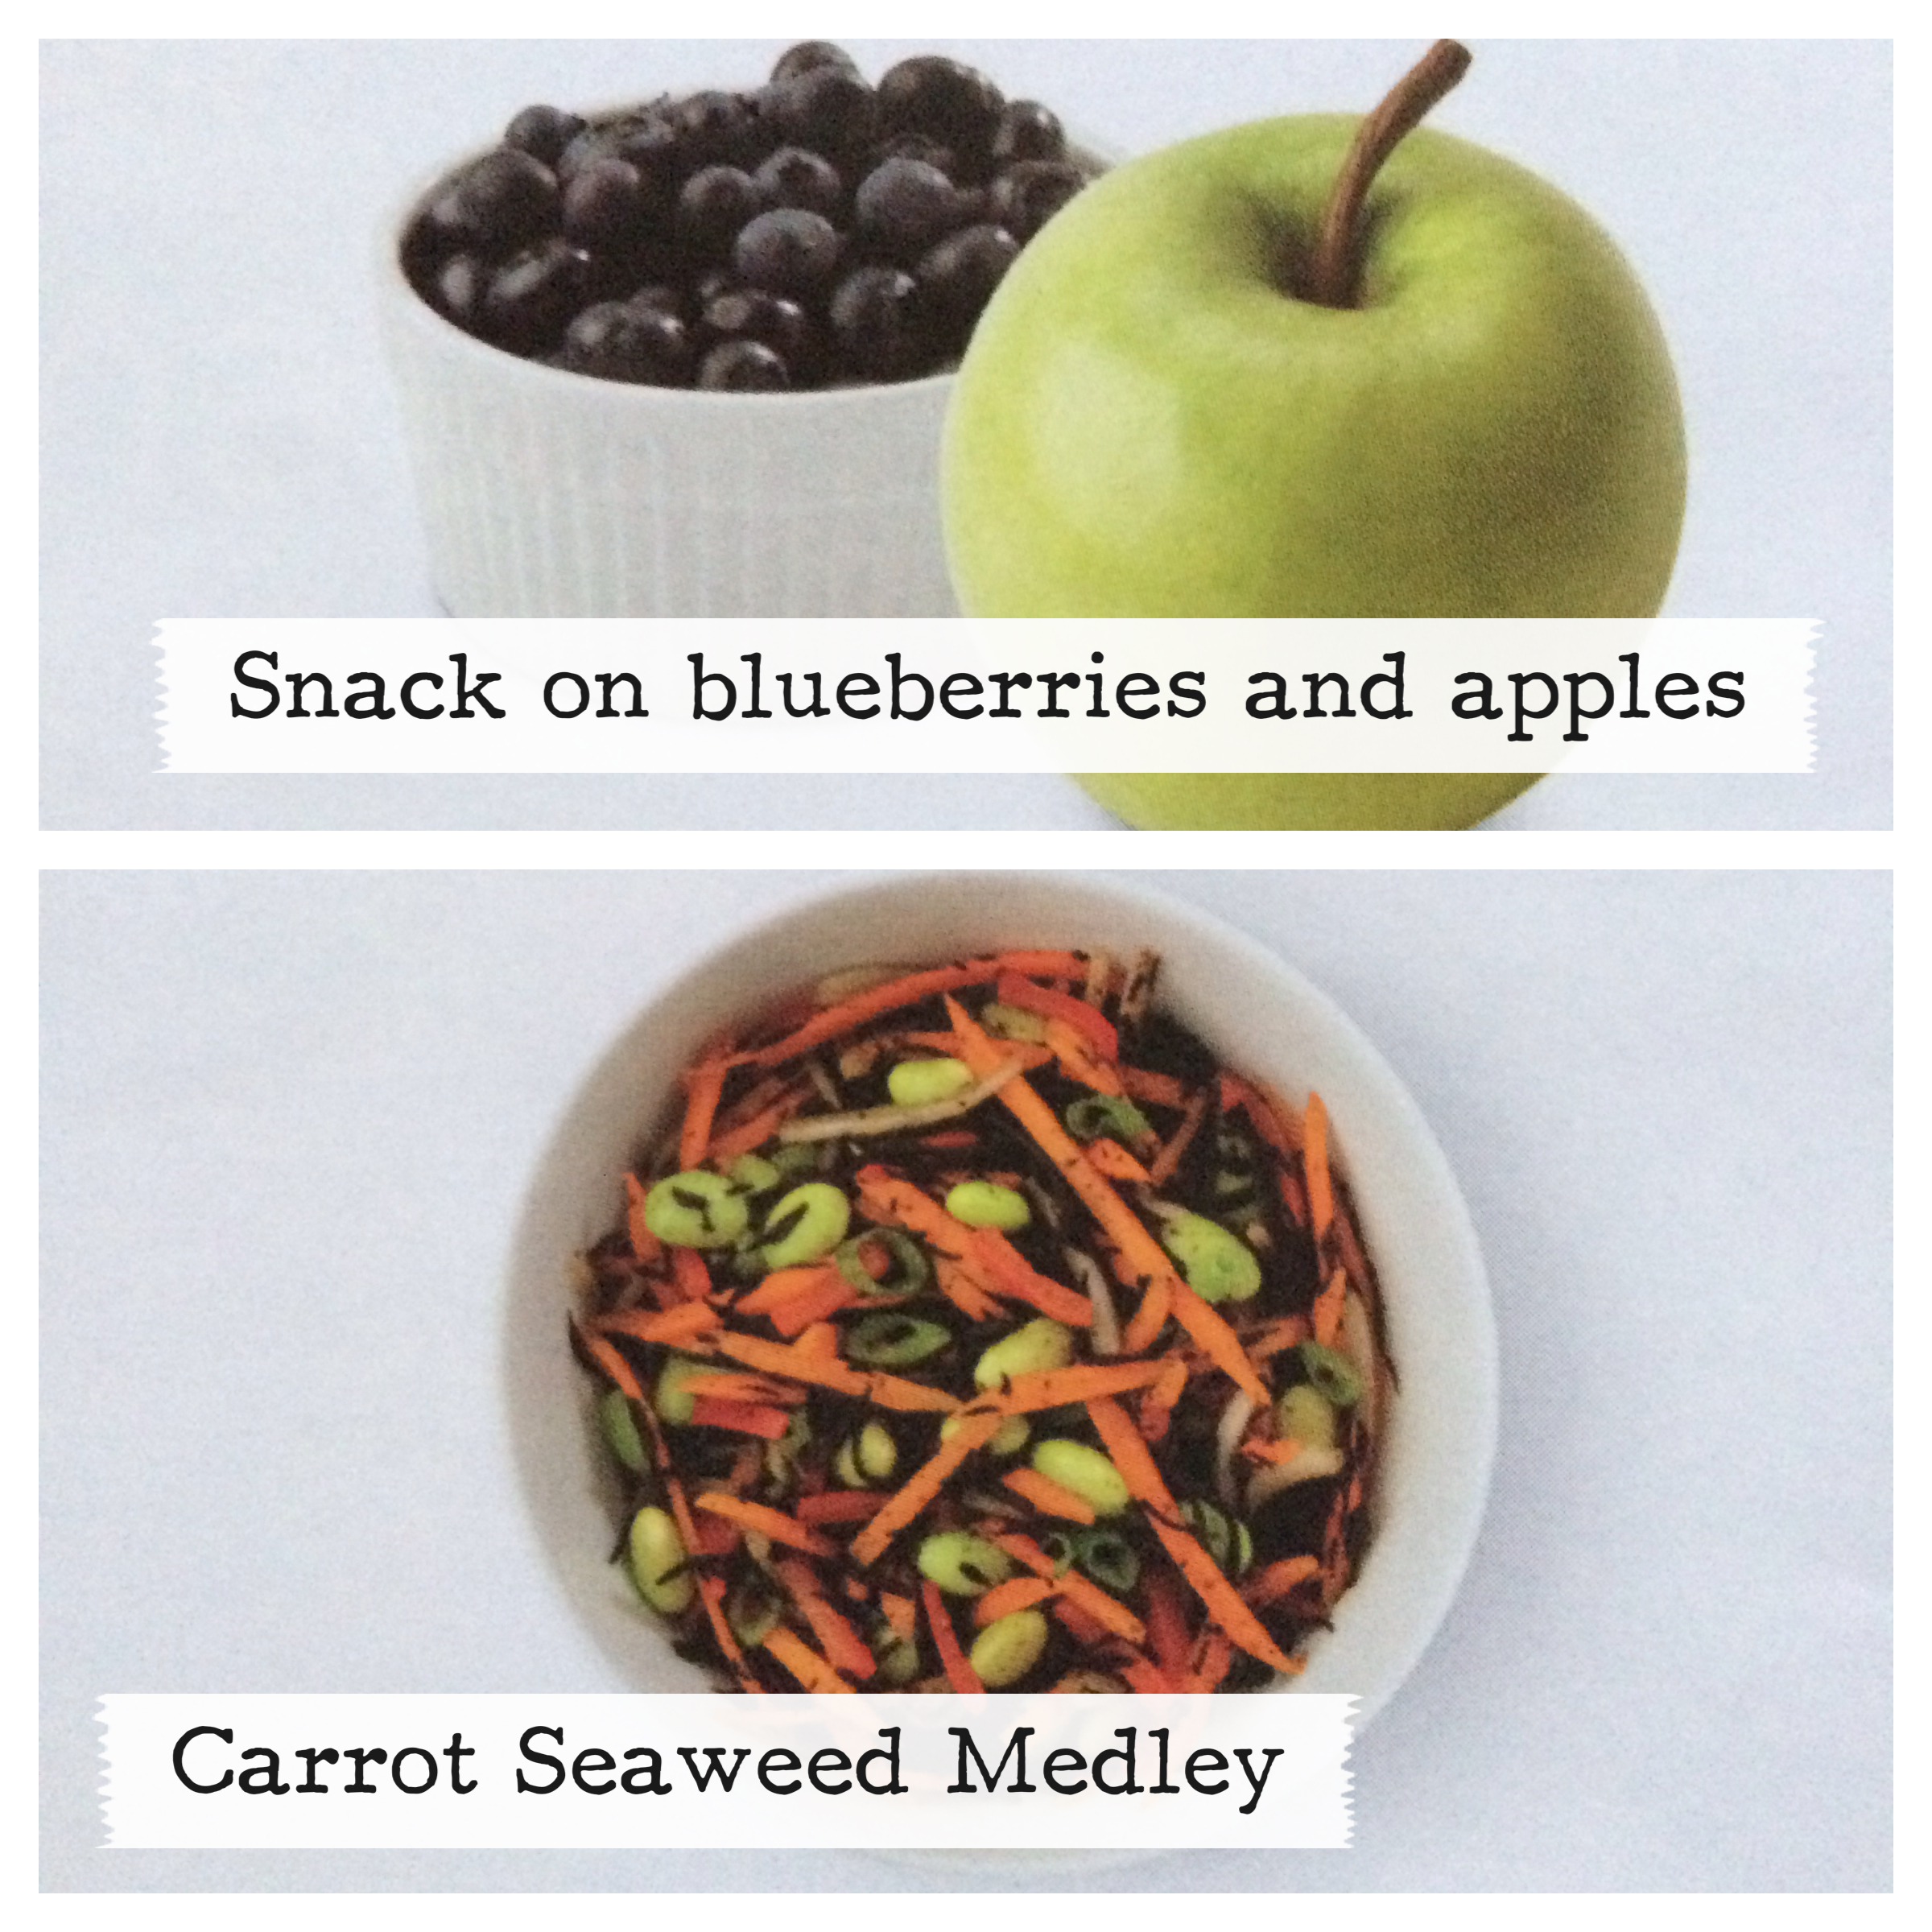 Carrot Seaweed Medley quickly became one of my favorite recipes.